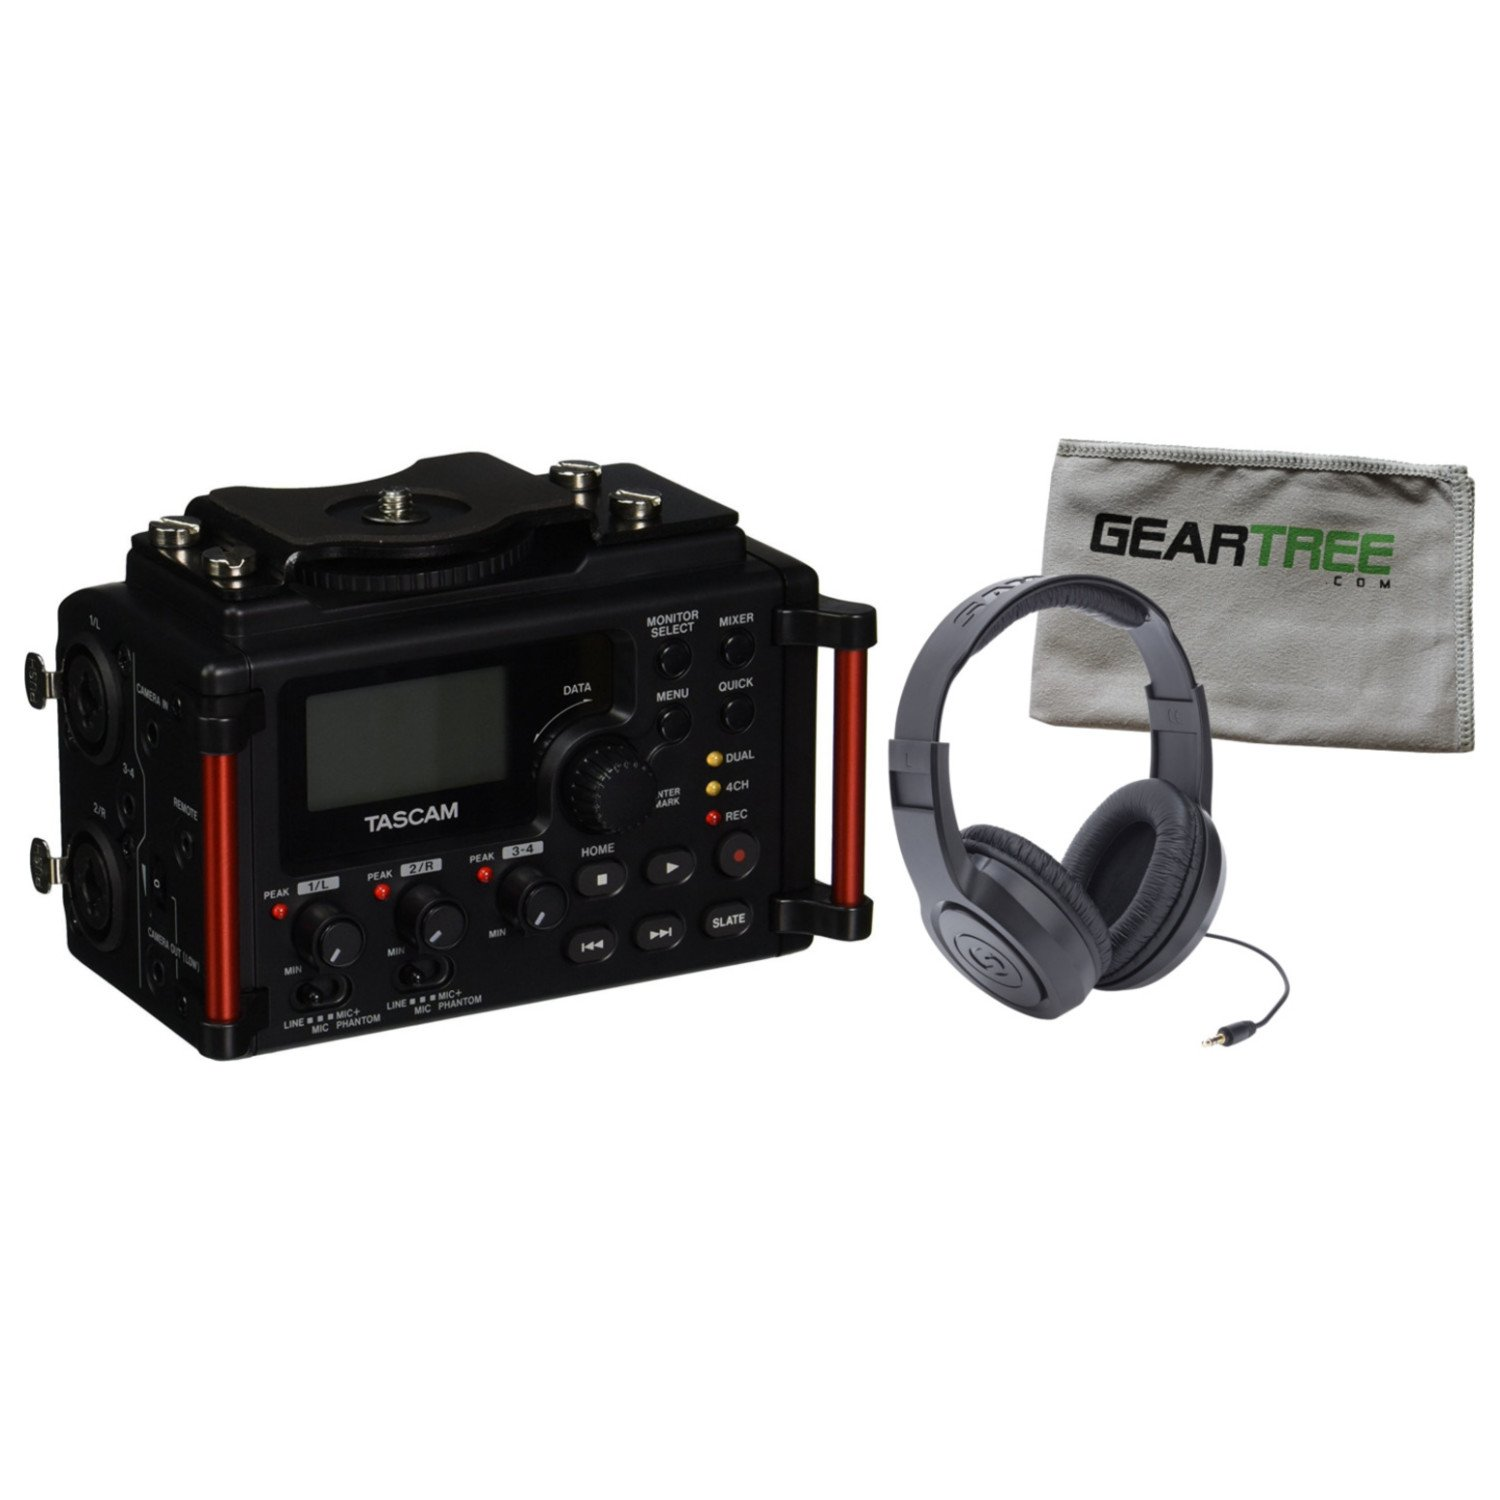 Tascam DR-60DmkII 4 Track Portable Recorder for DSLR w/Geartree Cloth and Headp